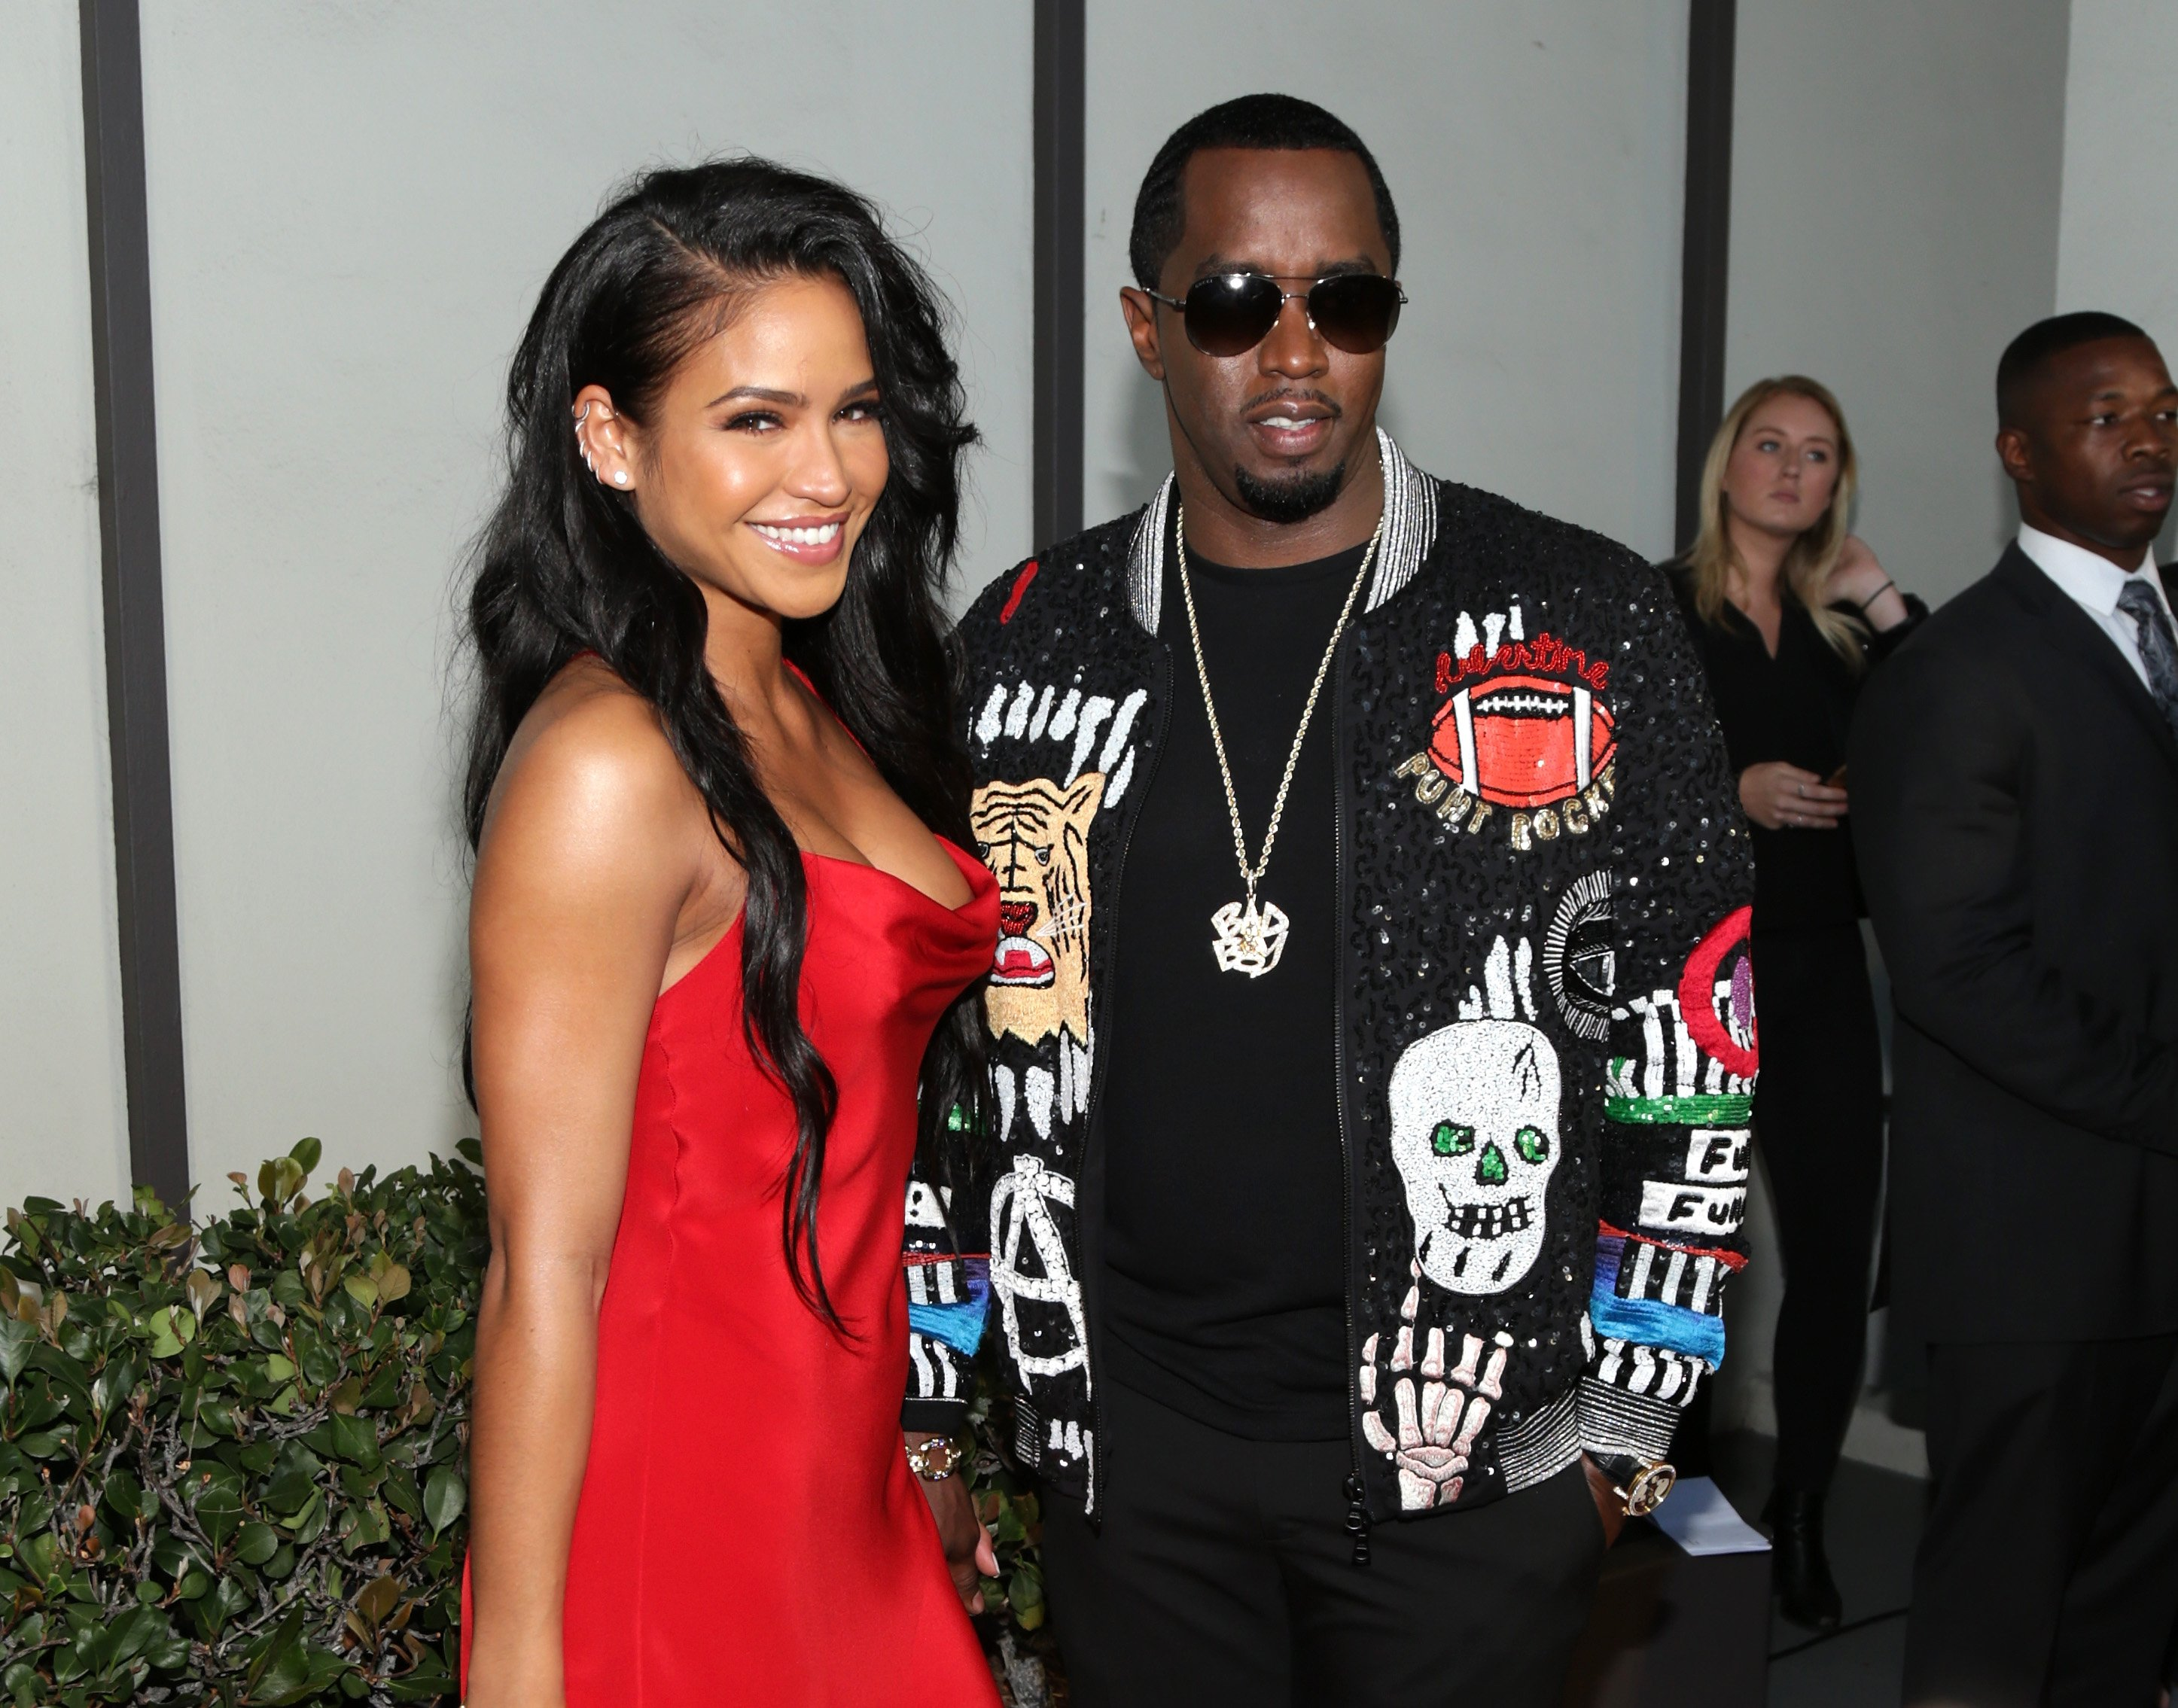 """Cassie And Diddy Attend The L.A. Premiere For """"Can't Stop, Won't Stop"""", 2017. 